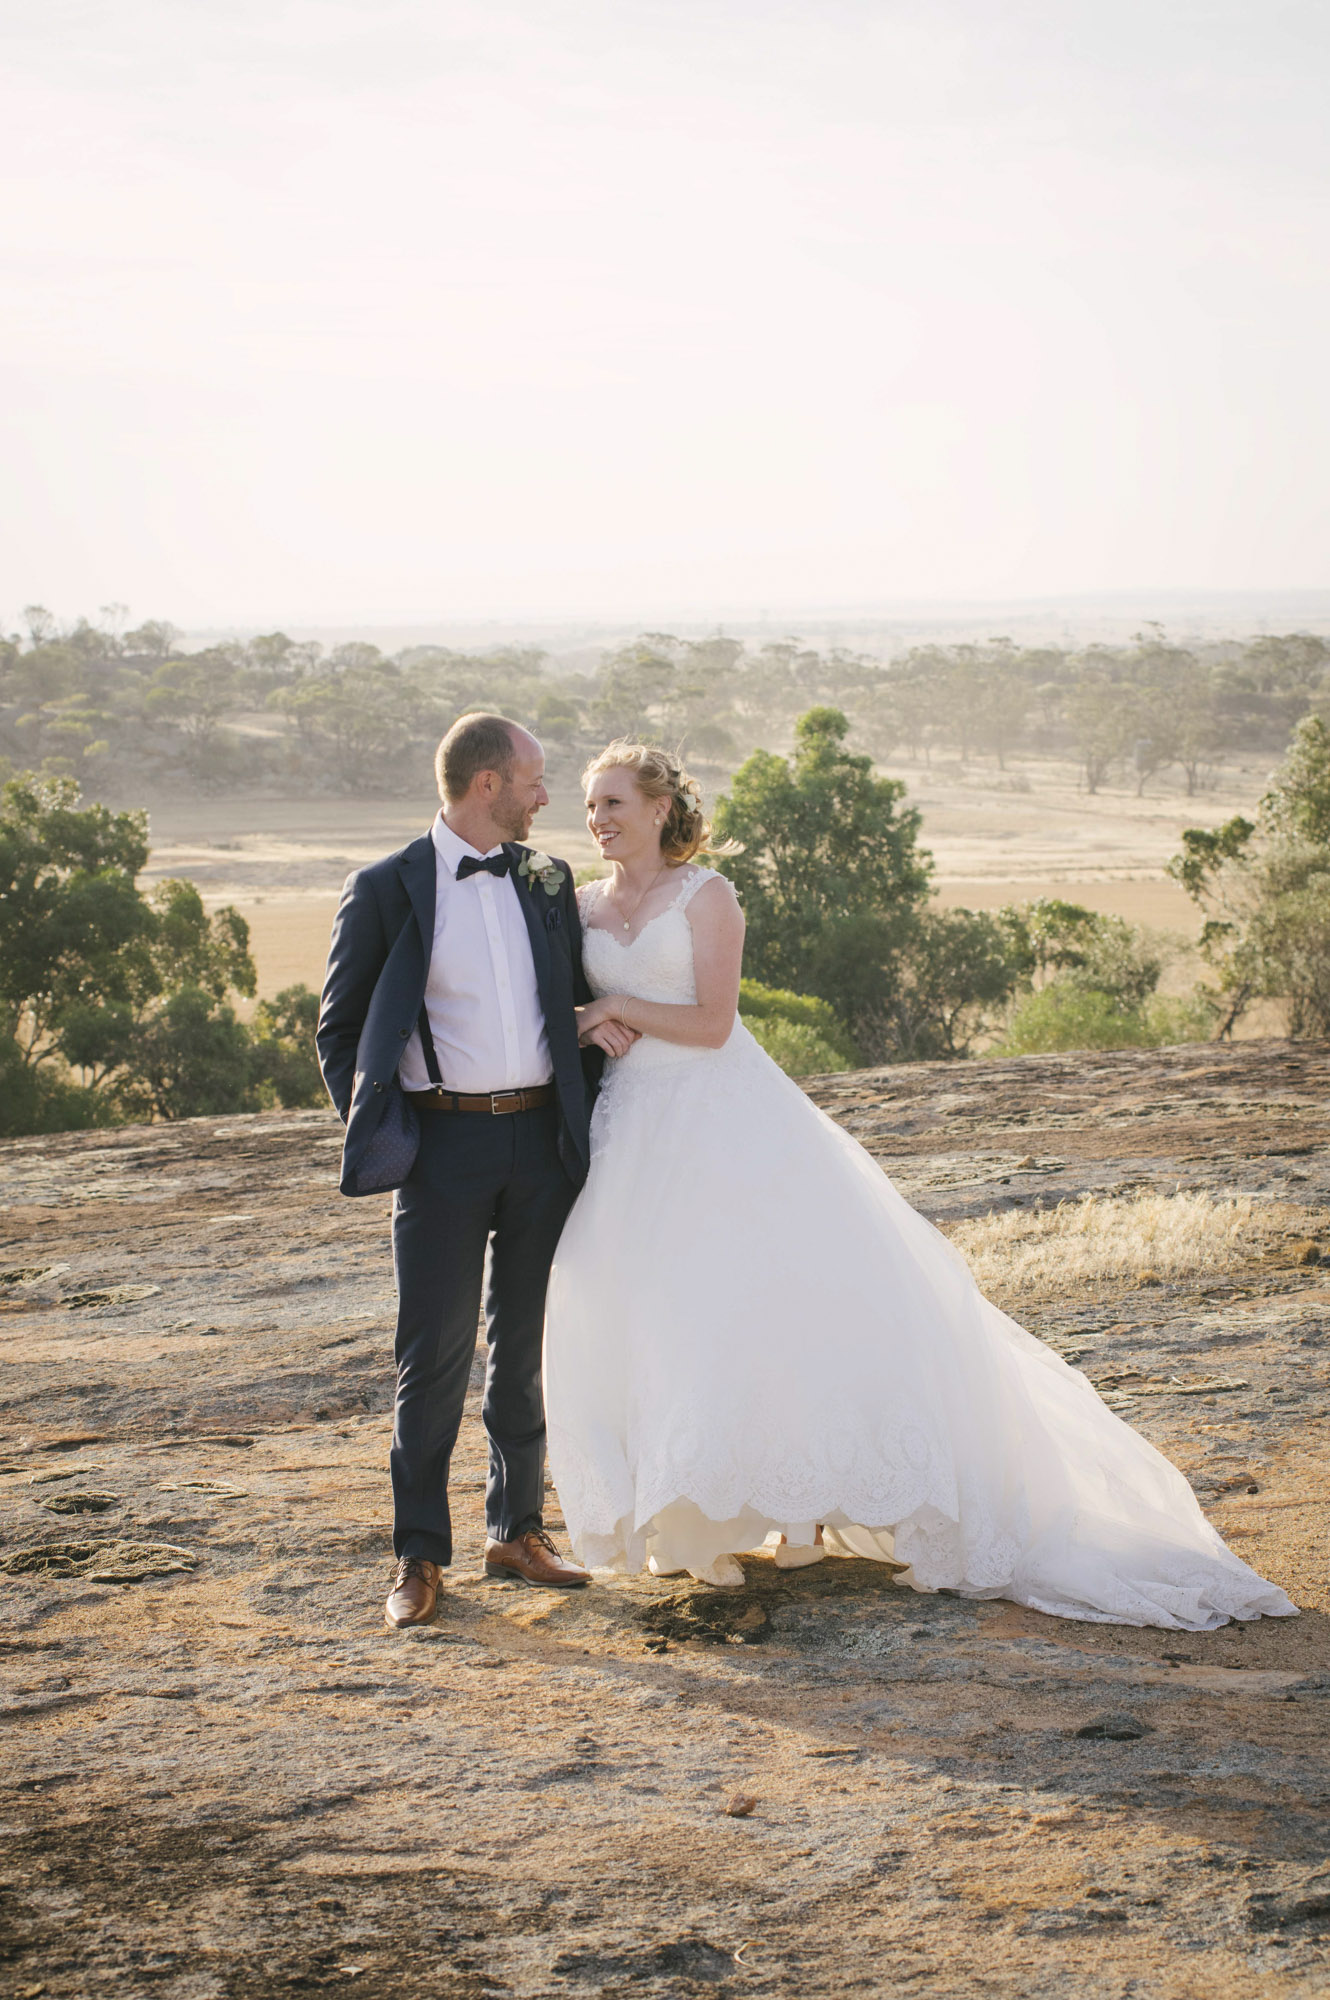 Angie-Roe-Photography-Wedding-Perth-Northam-Wheatbelt-Country-Rural (150).jpg